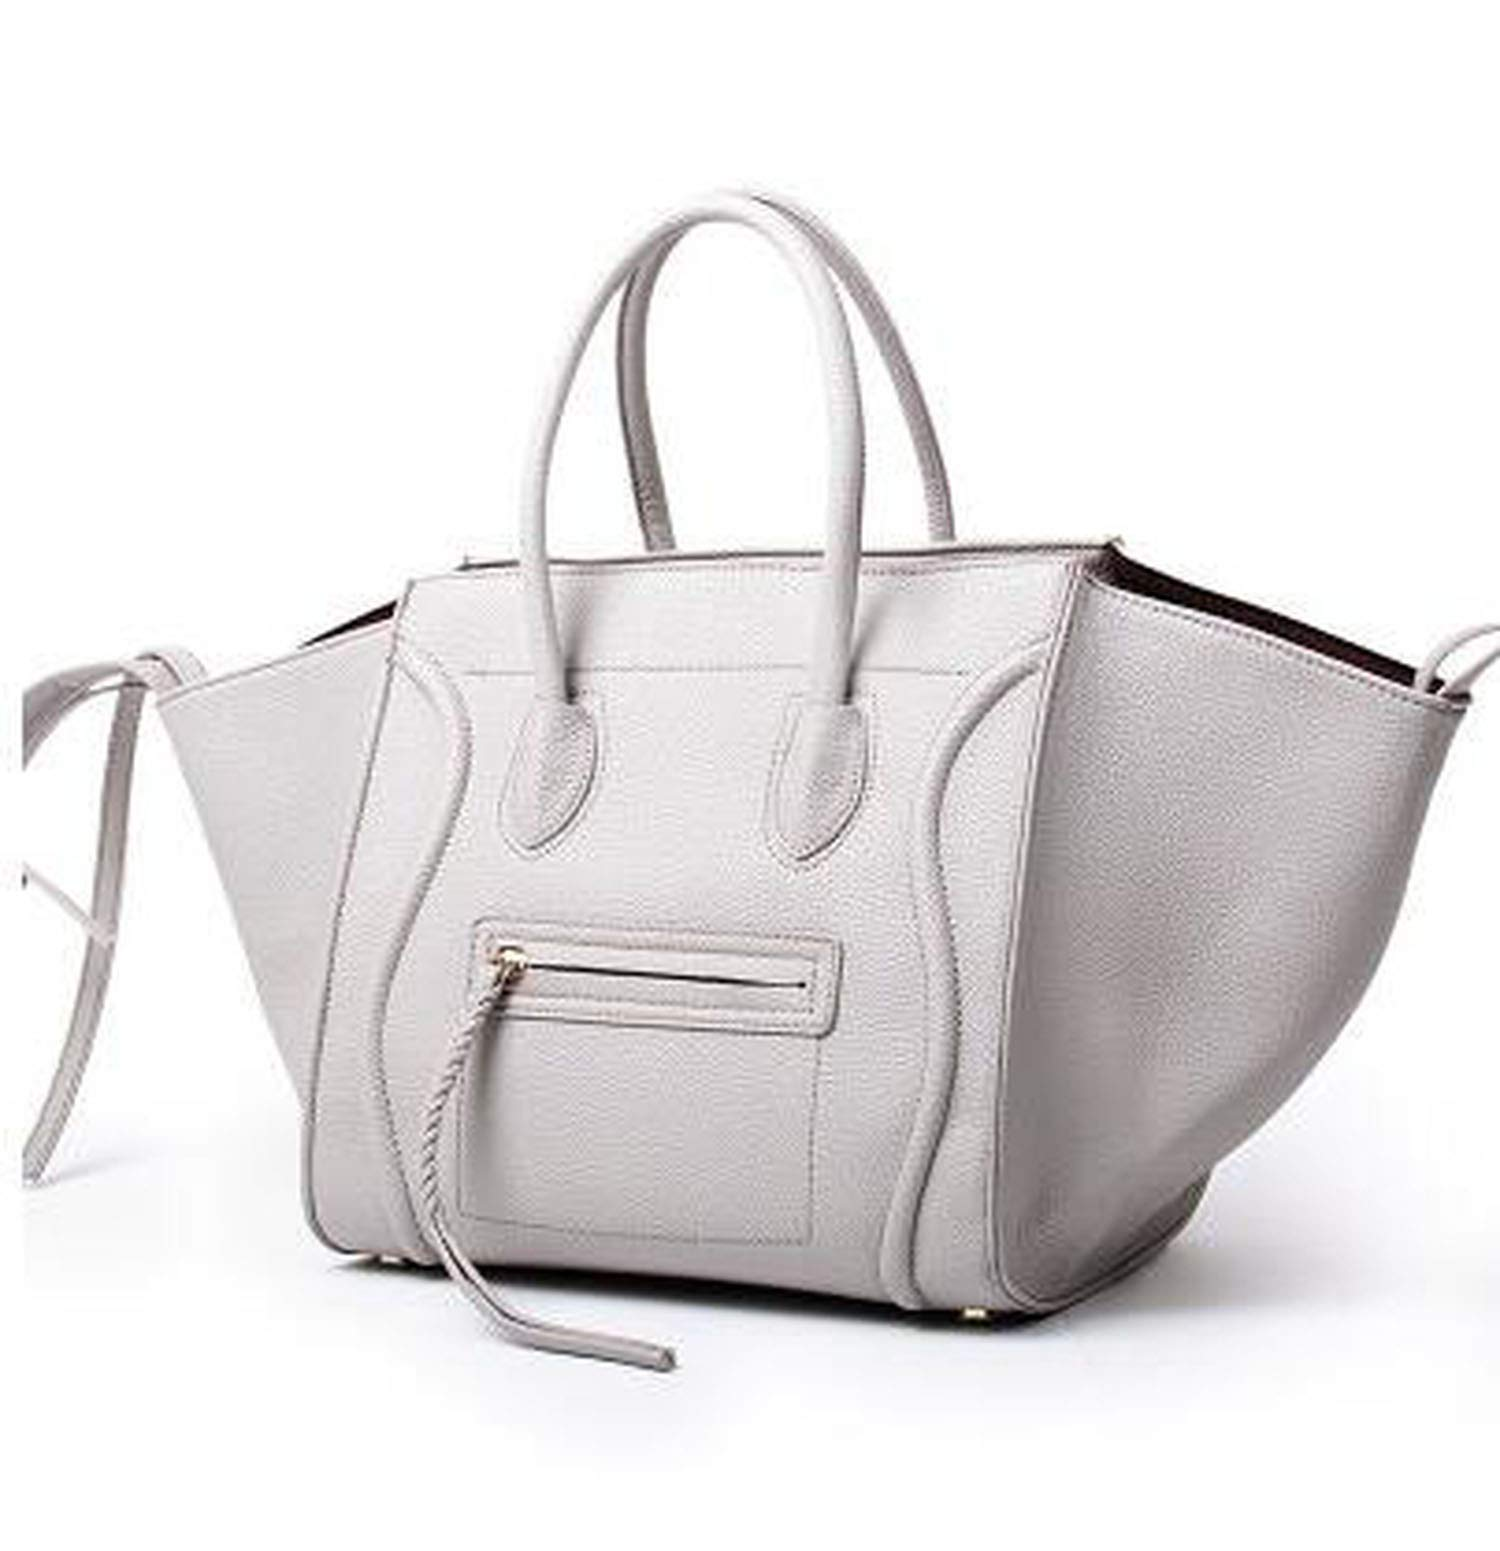 Women Handbags Fashion Leather Face Smile Handbag Quality Trapeze Smiley Claws Bag,Big Gray